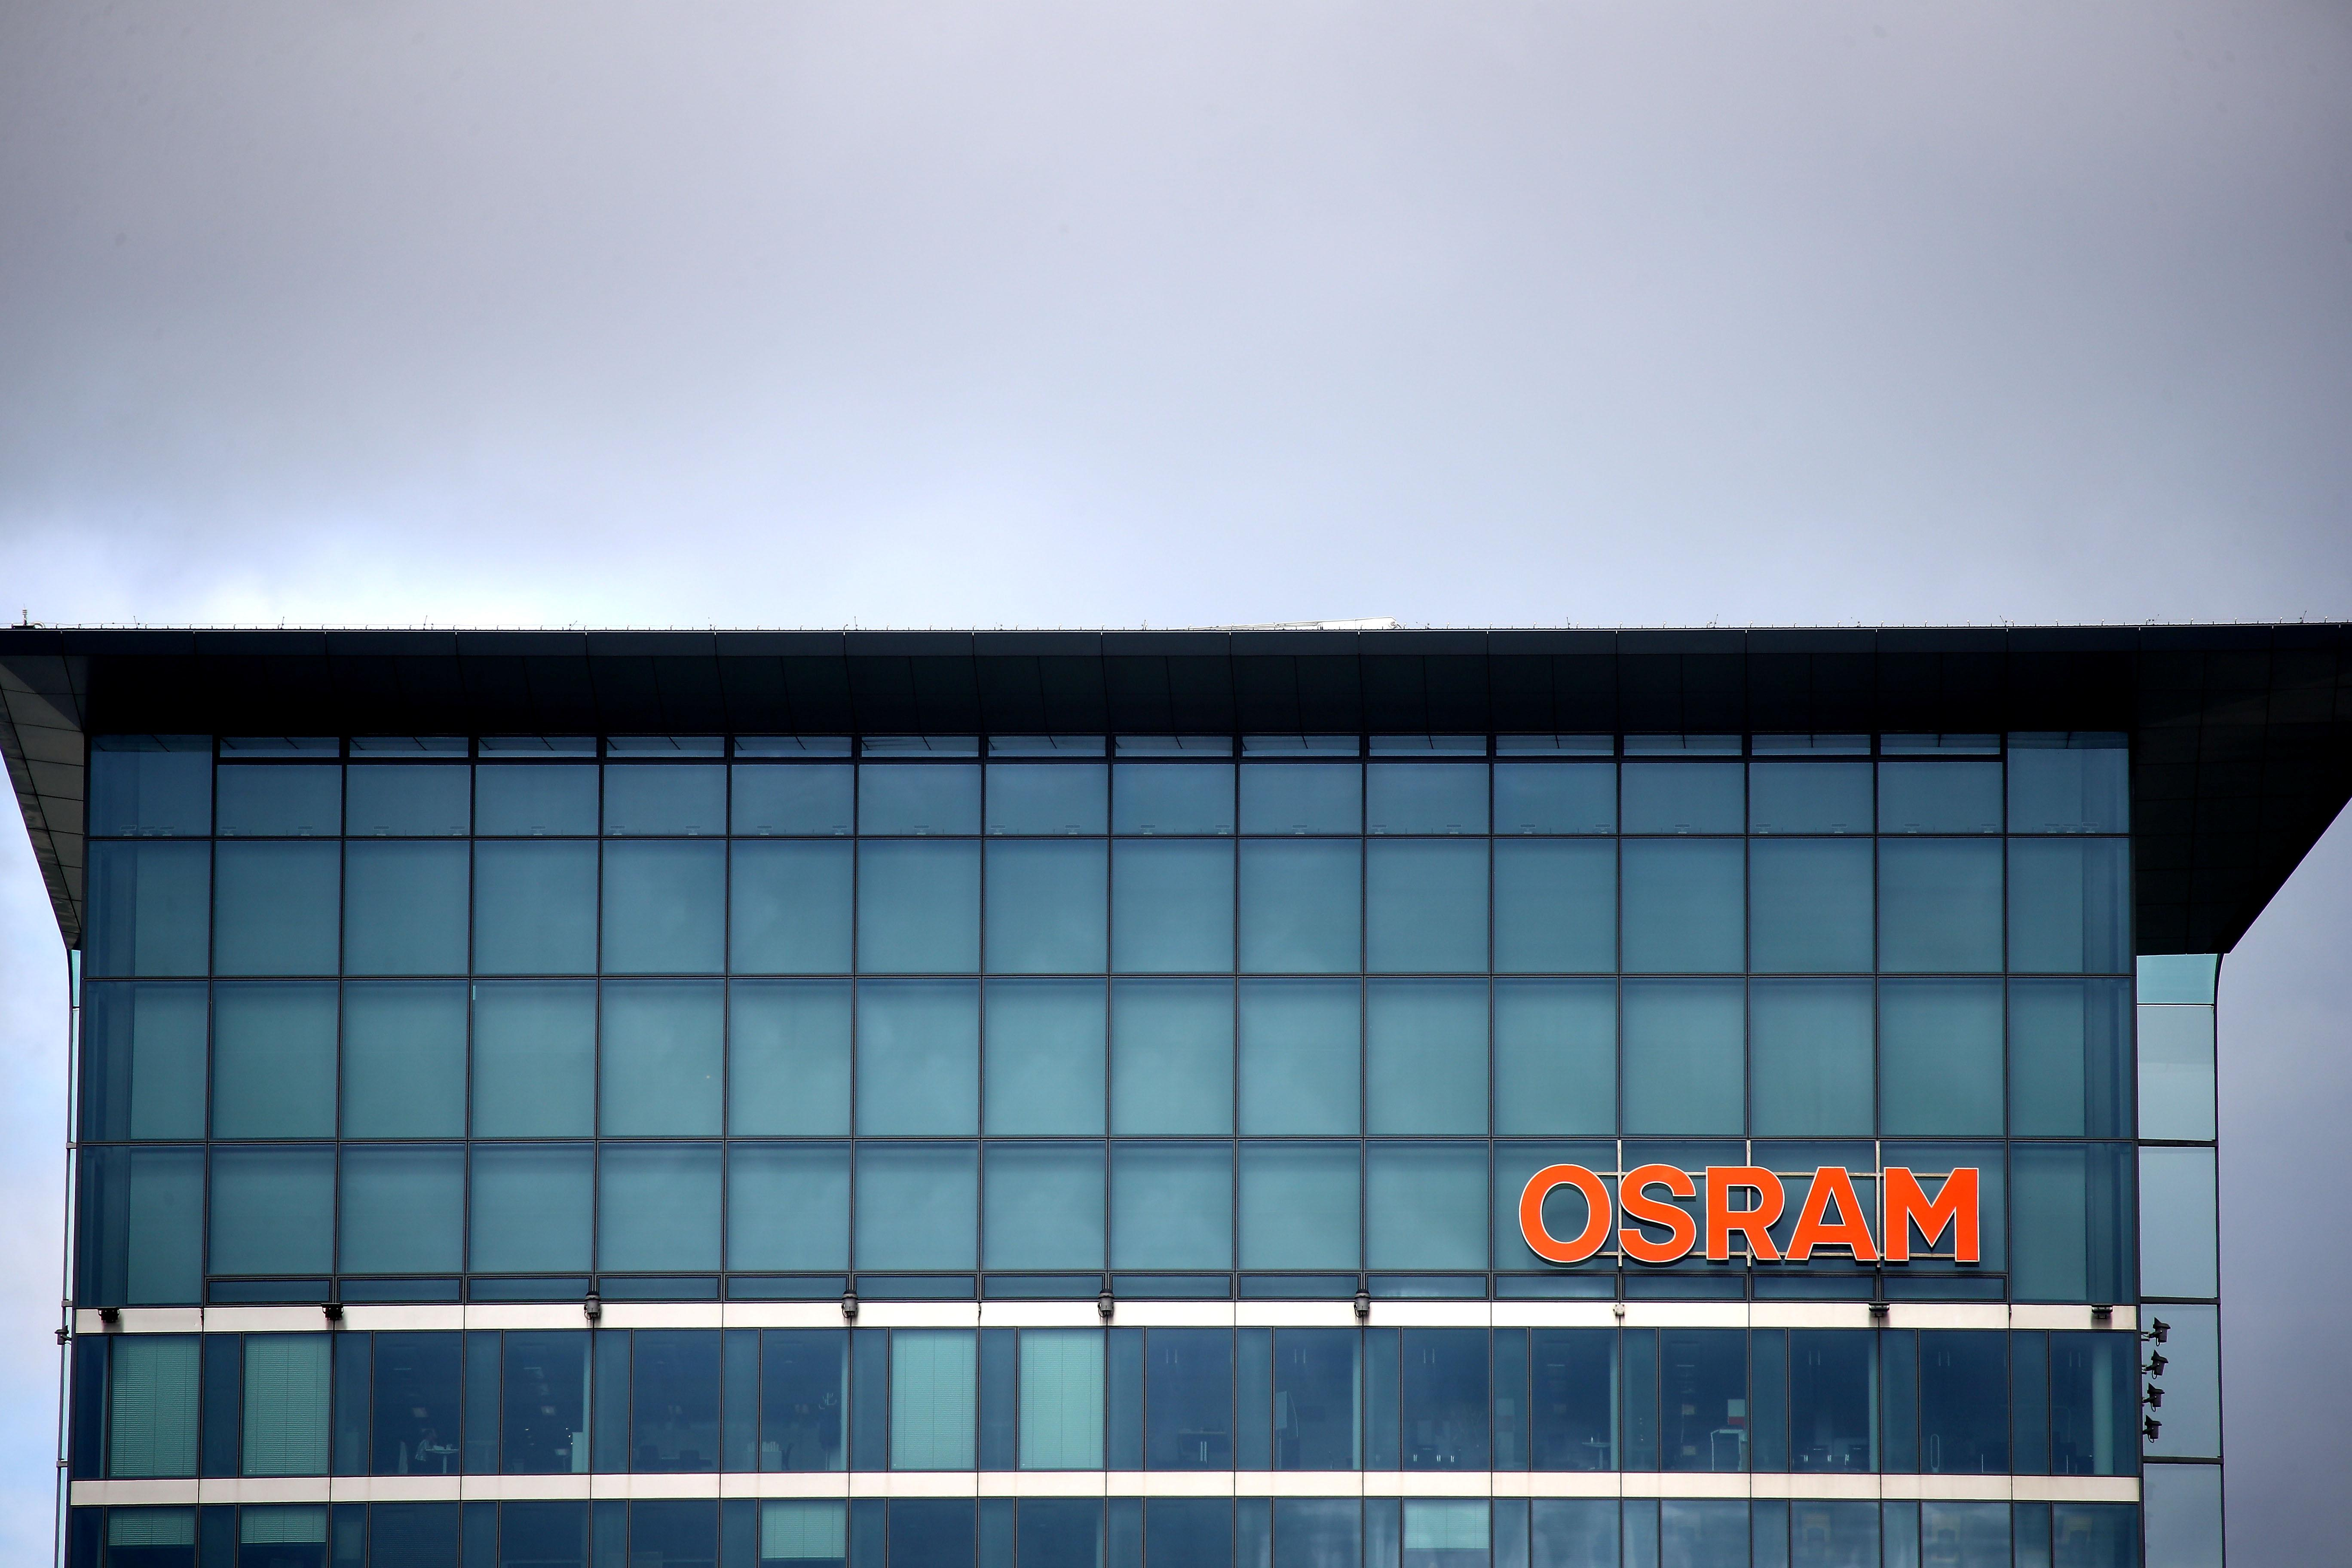 Austria's AMS says looking forward to discussions with Osram